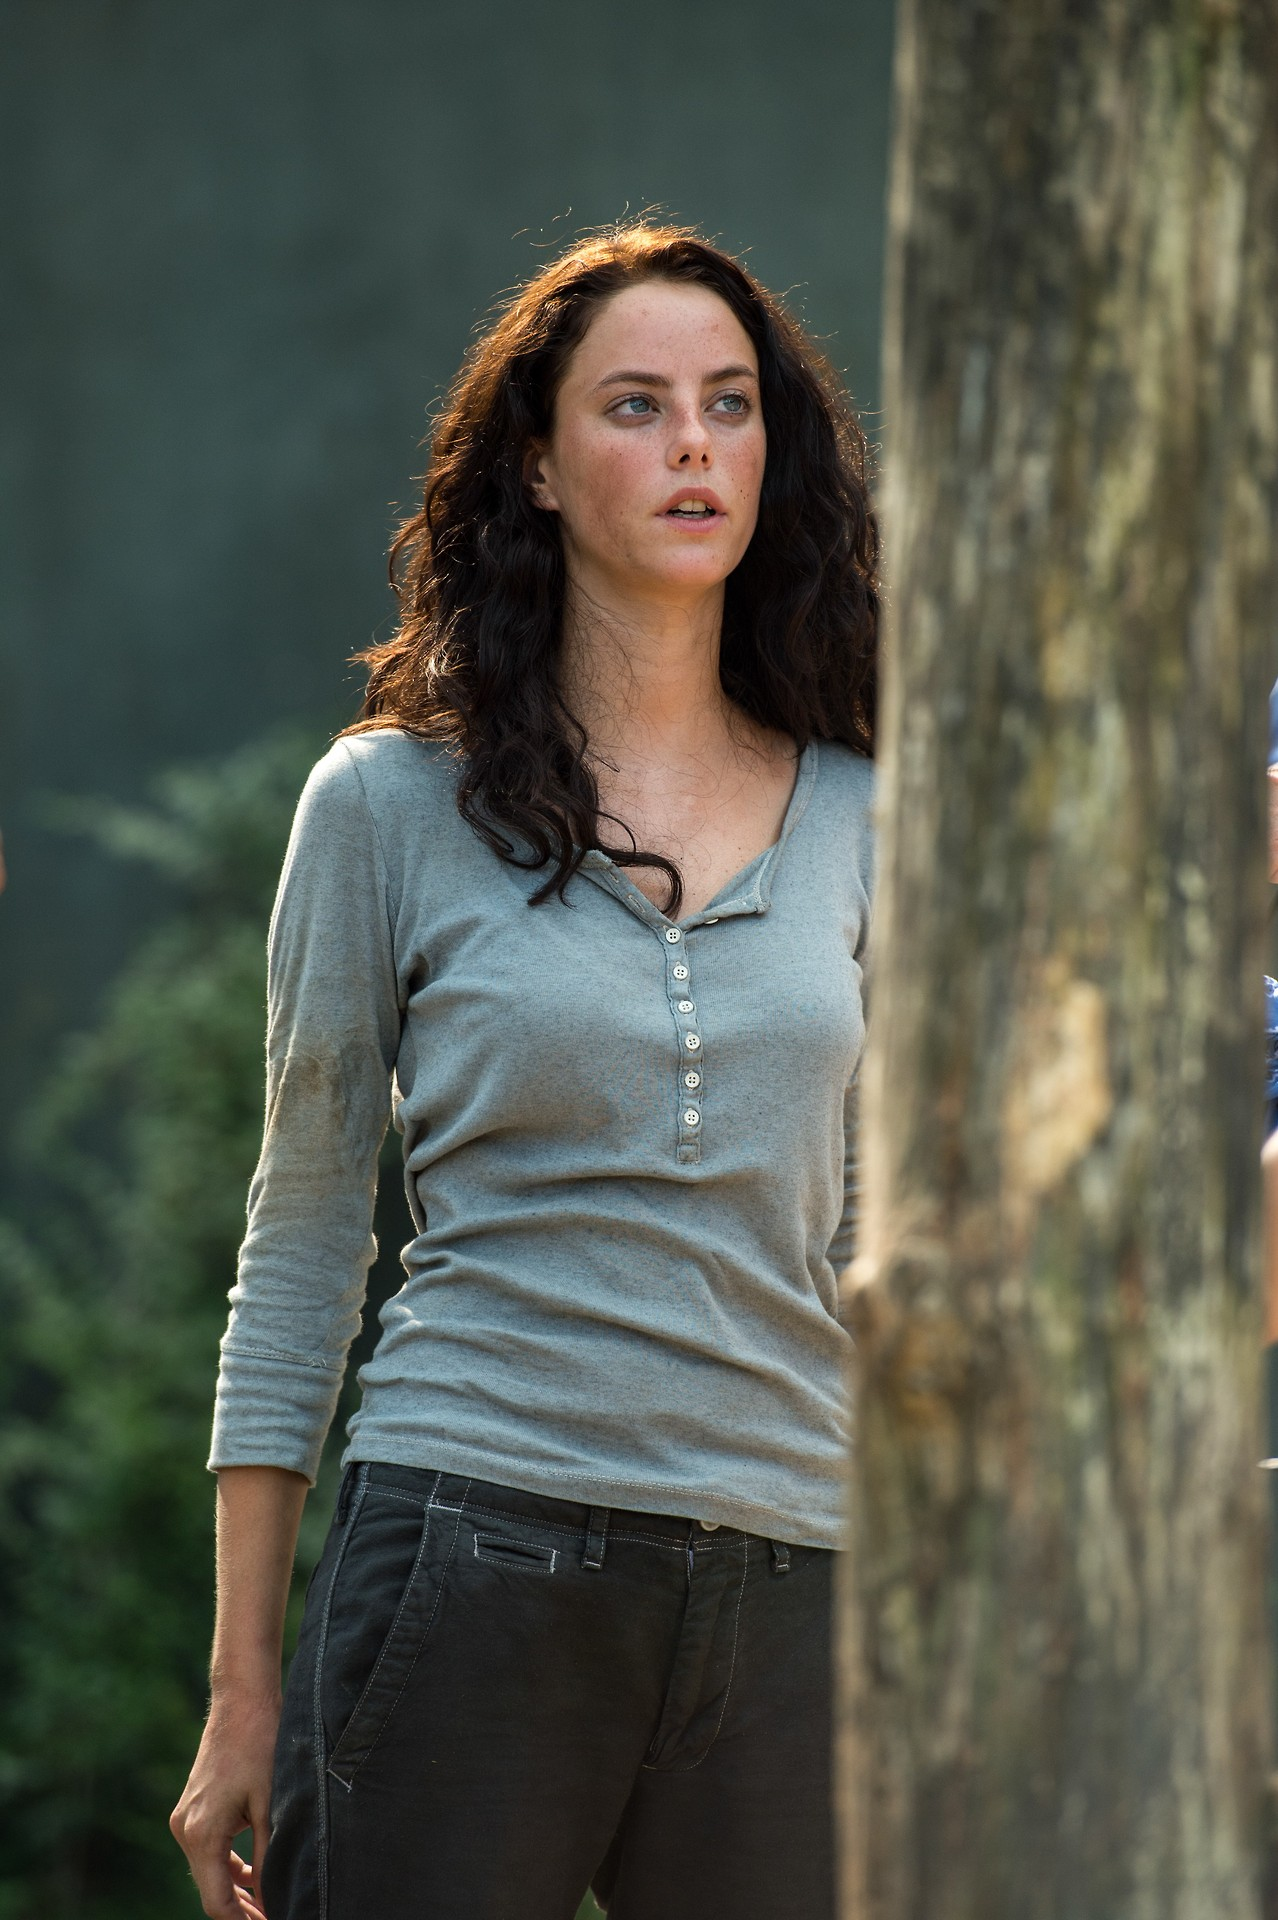 http://images6.fanpop.com/image/photos/37600000/Teresa-the-maze-runner-37608285-1278-1920.jpg